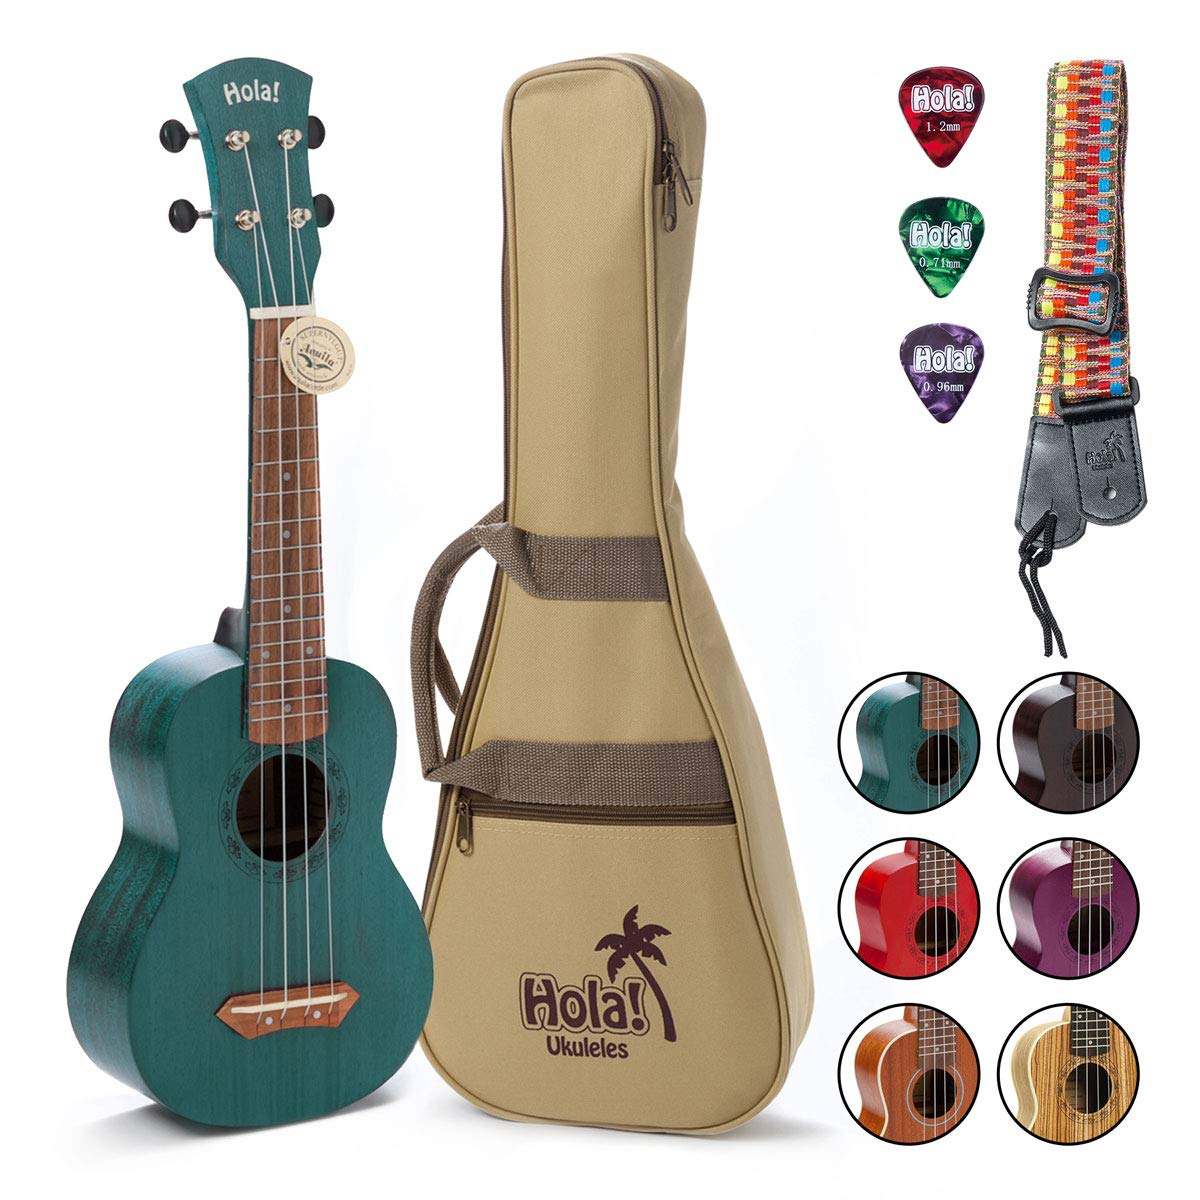 Hola! Music HM-121BU+ Deluxe Mahogany Soprano Ukulele Bundle with Aquila Strings, Padded Gig Bag, Strap and Picks - Teal